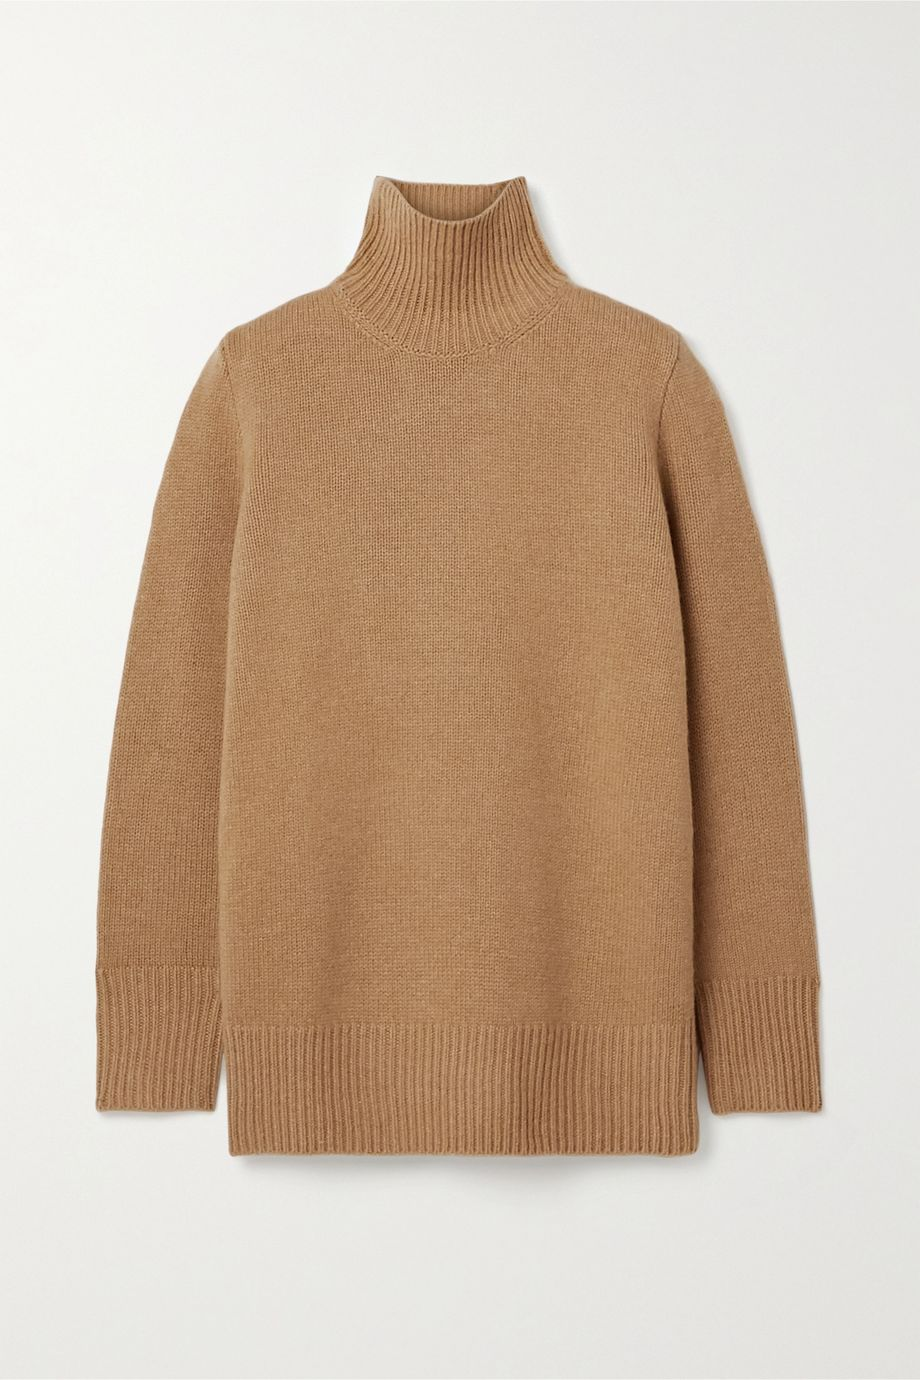 The Row Sadel Stehkragenpullover aus Kaschmir in Oversized-Passform